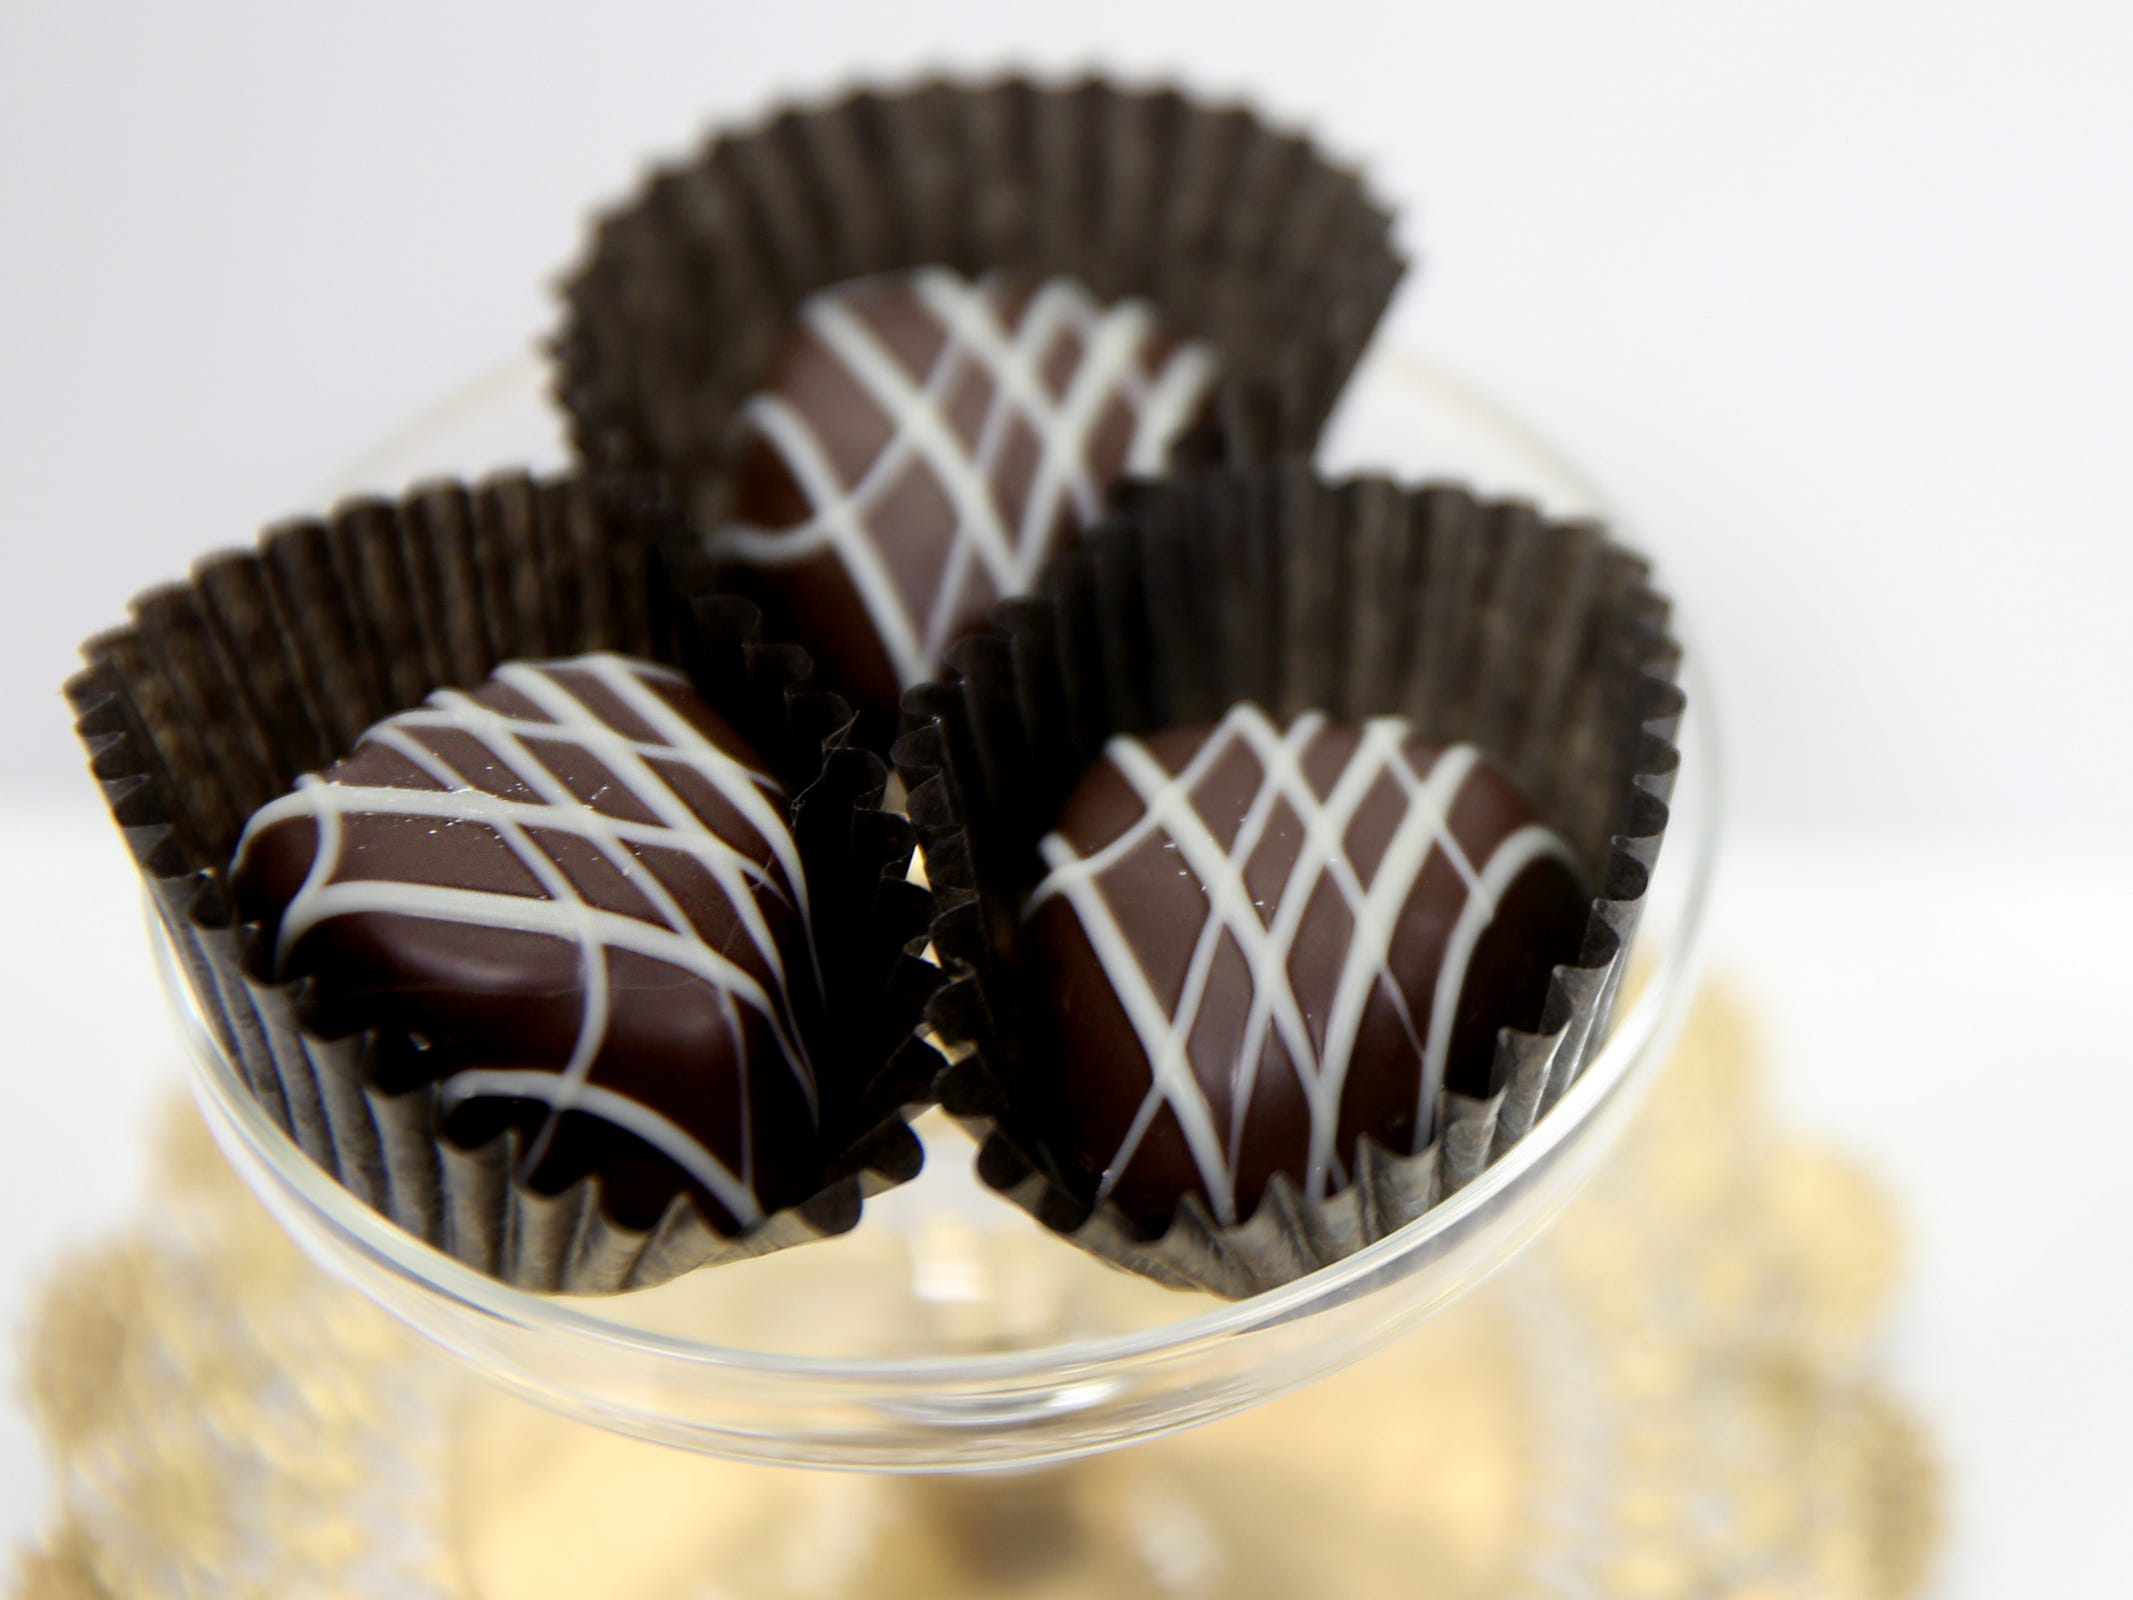 Heart-shaped truffles available at See's Candies in downtown Salem on Tuesday, Feb. 5, 2019.